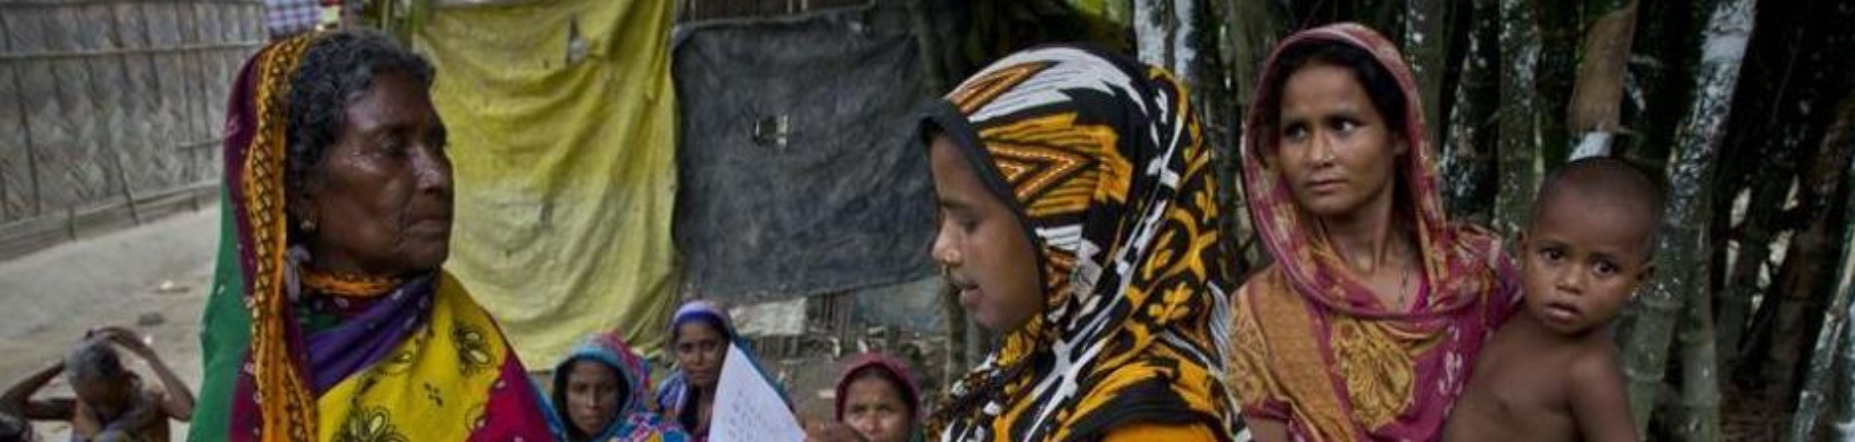 Women 'Worst Victims' of NRC: Gendered and Discriminatory Nature of the Register Revealed